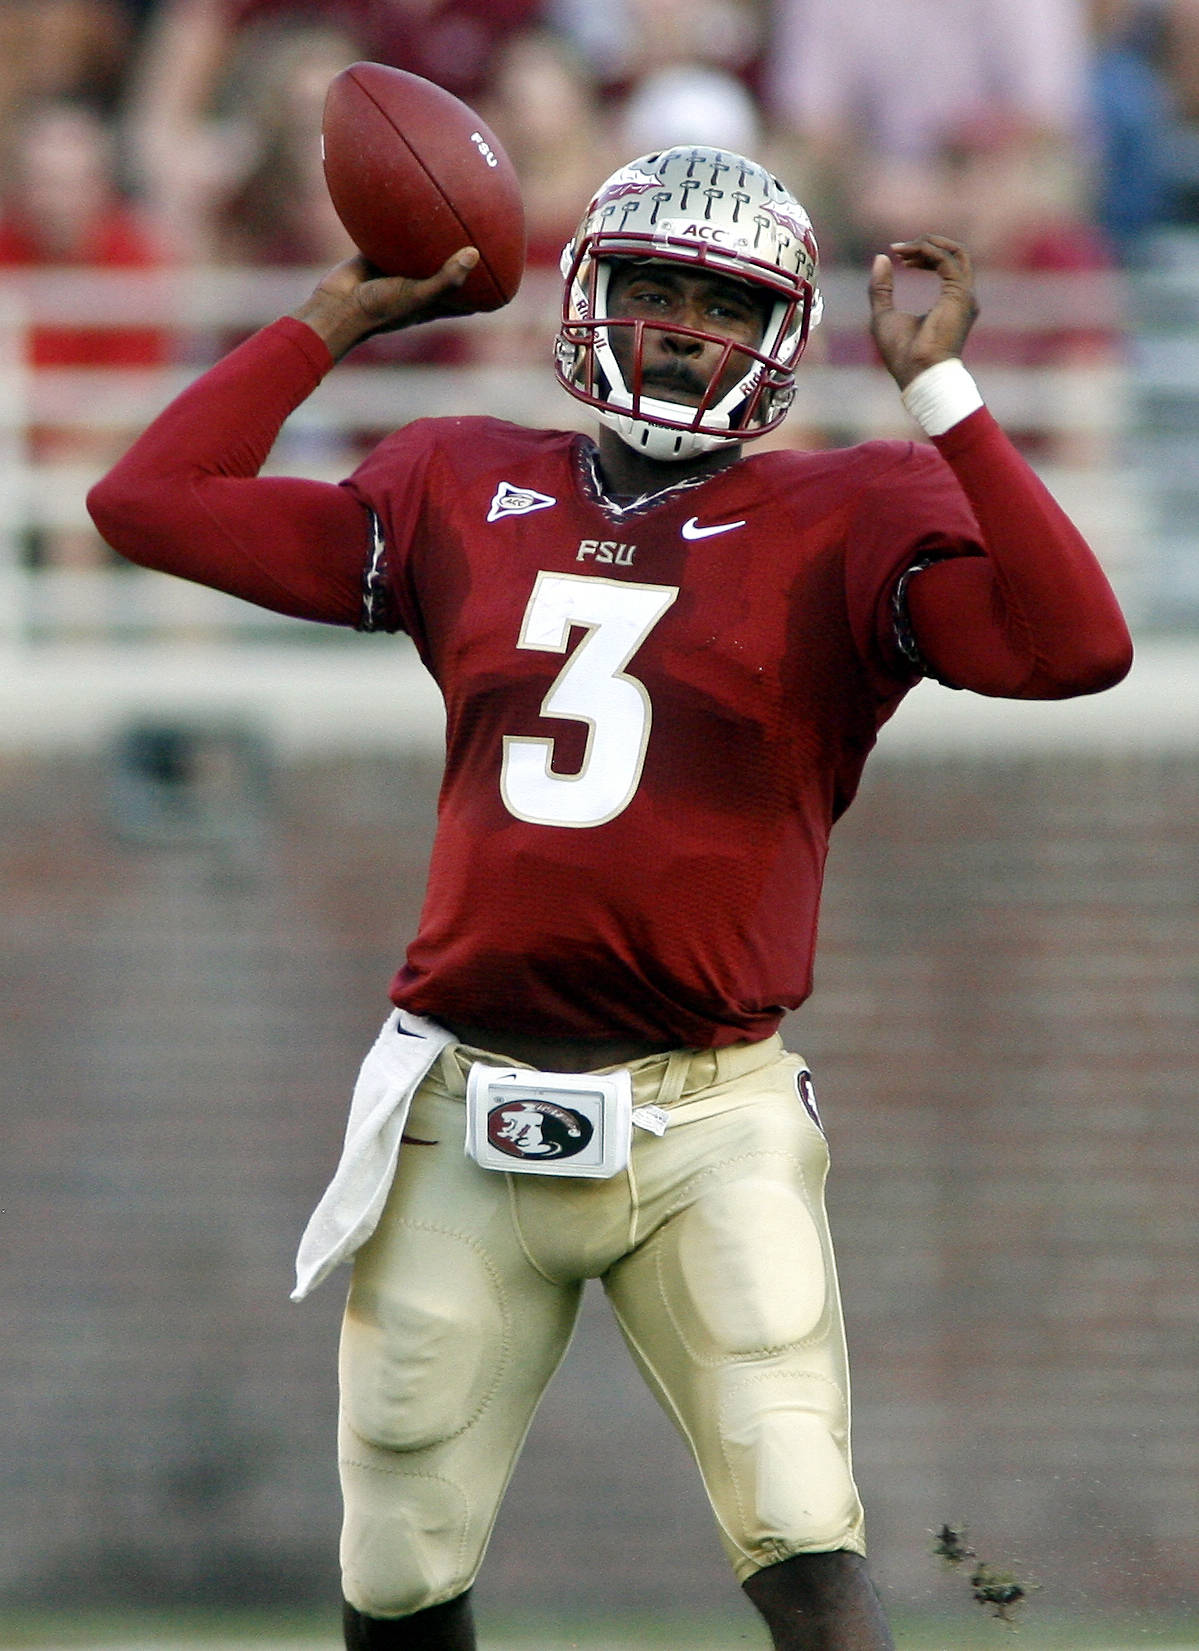 Florida State quarterback E.J. Manuel (3) throws during the first quarter. (AP Photo/Phil Sears)